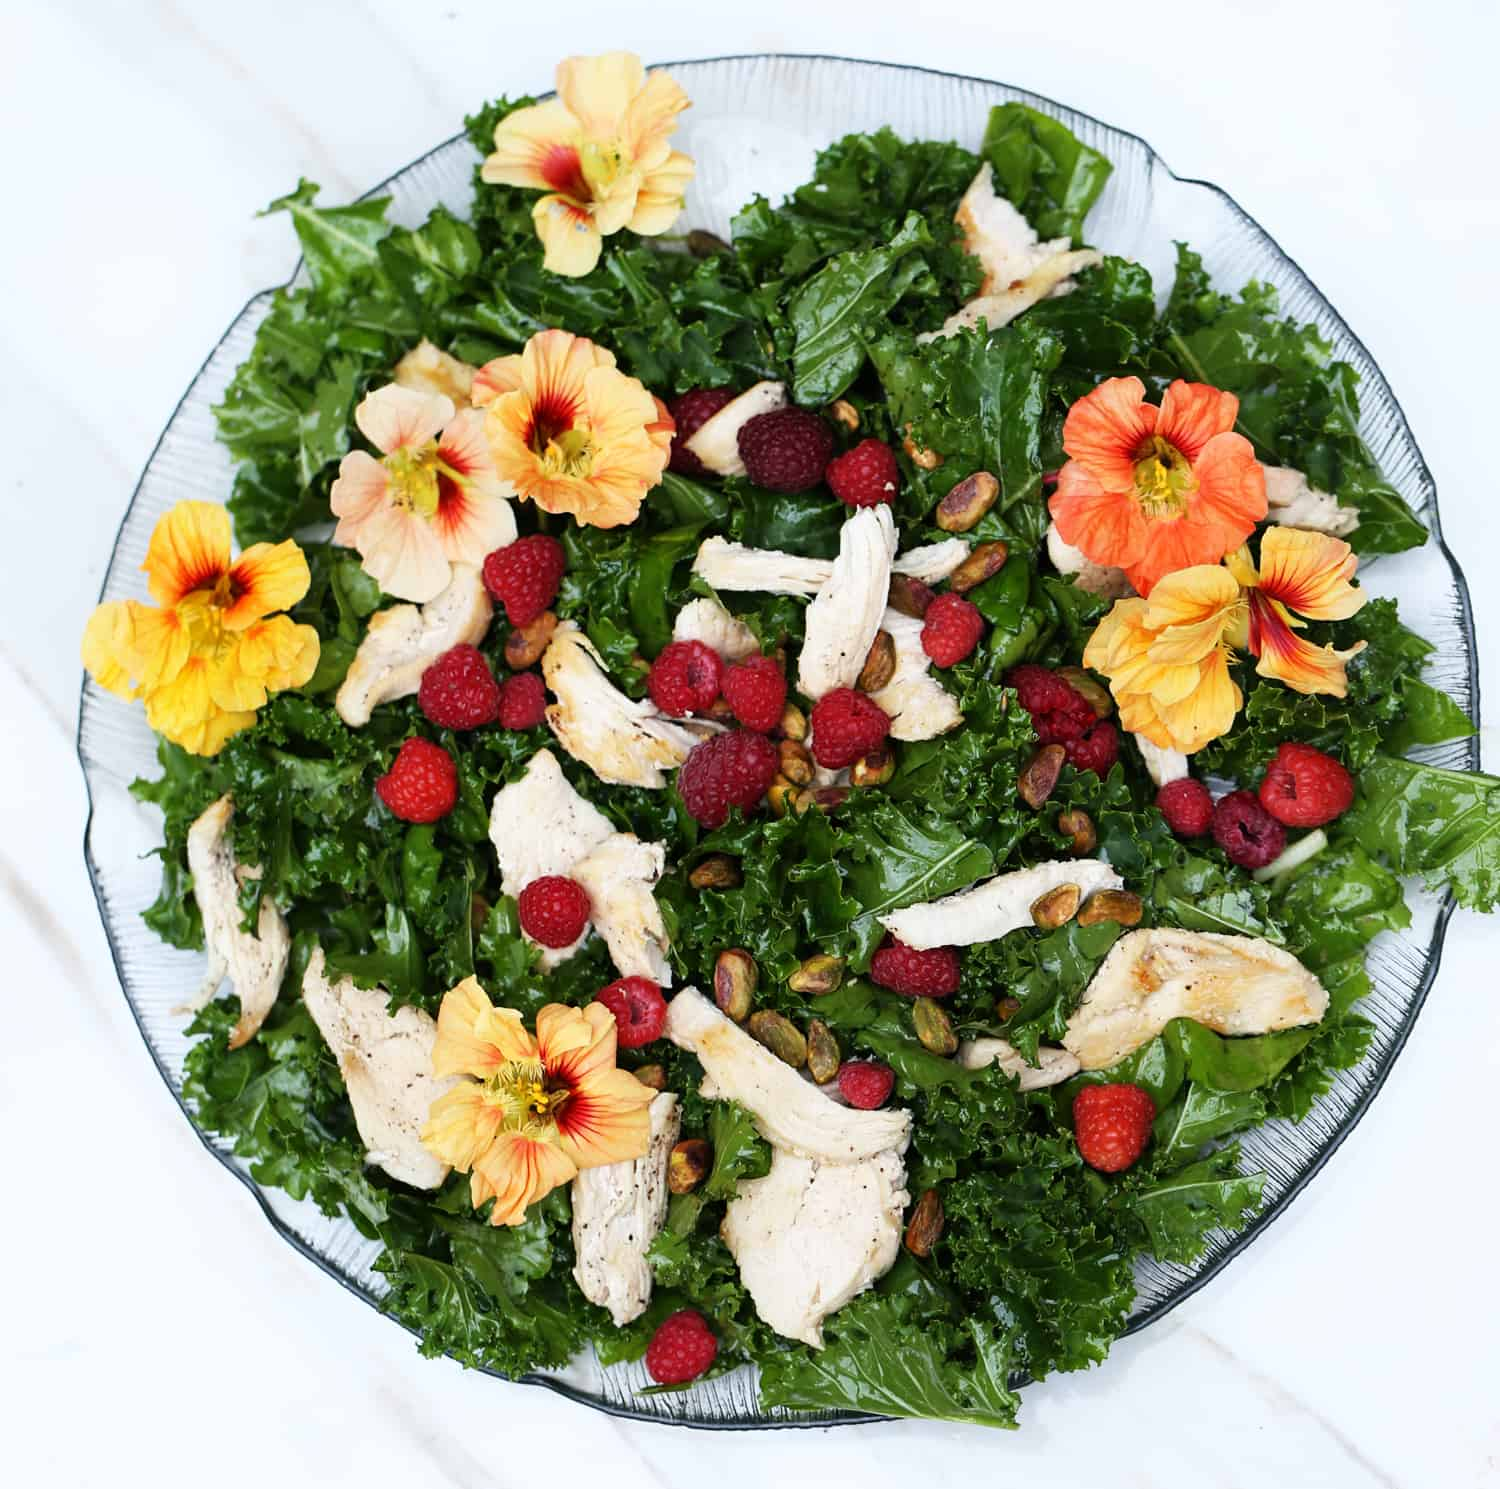 Raspberry Kale Salad with Edible Flowers, shrub vinaigrette and grilled chicken - great seasonal summer dinner meal recipe idea